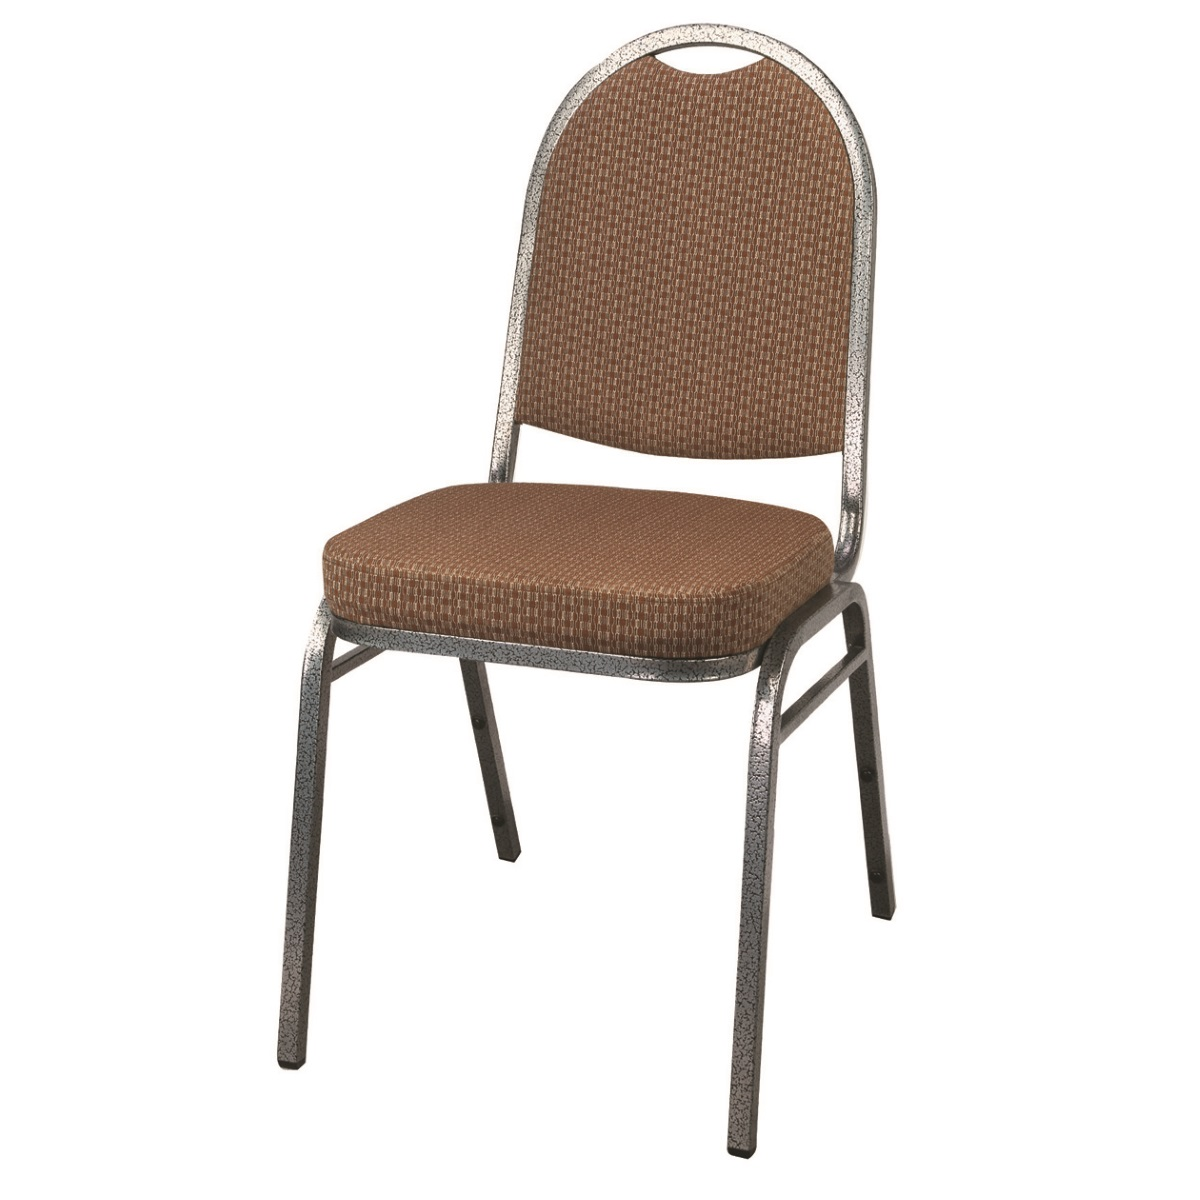 Padded Banquet Chairs dome banquet chair